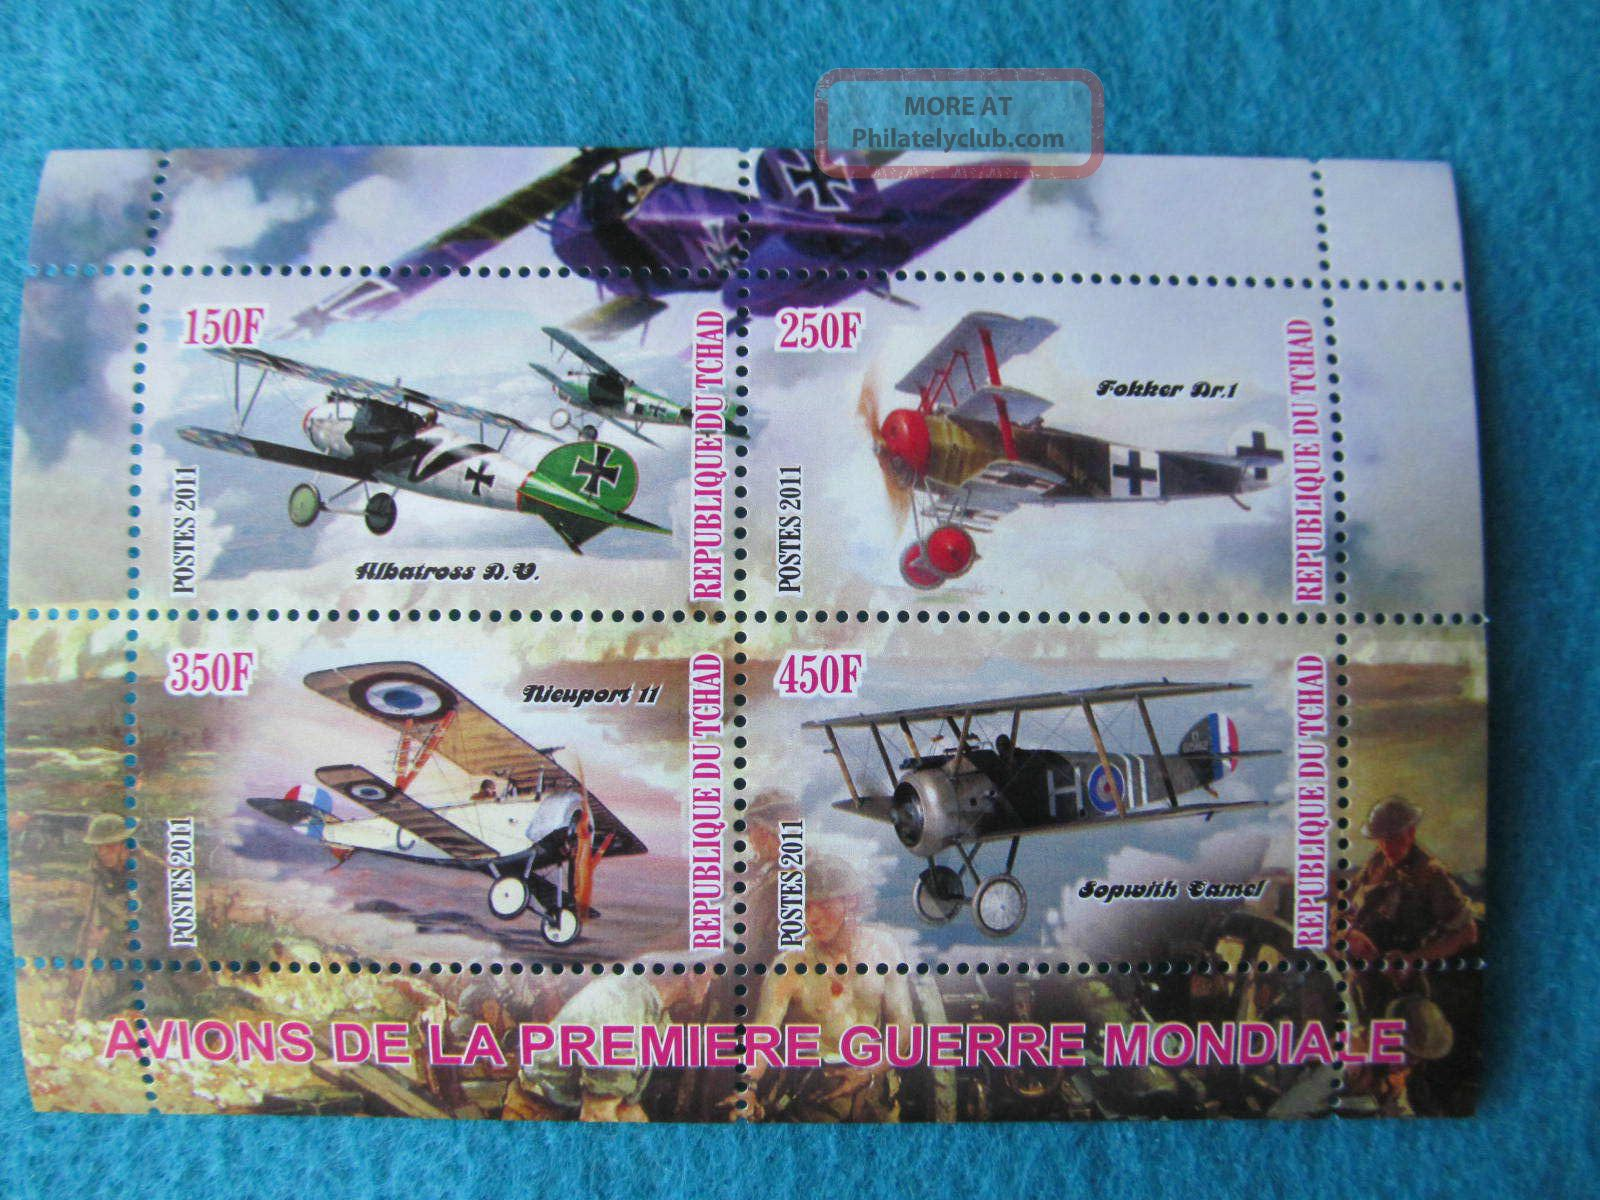 2011 Souvenir Stamp Sheet Of Wwi Military Bi Wing Airplanes Chad, Transportation photo